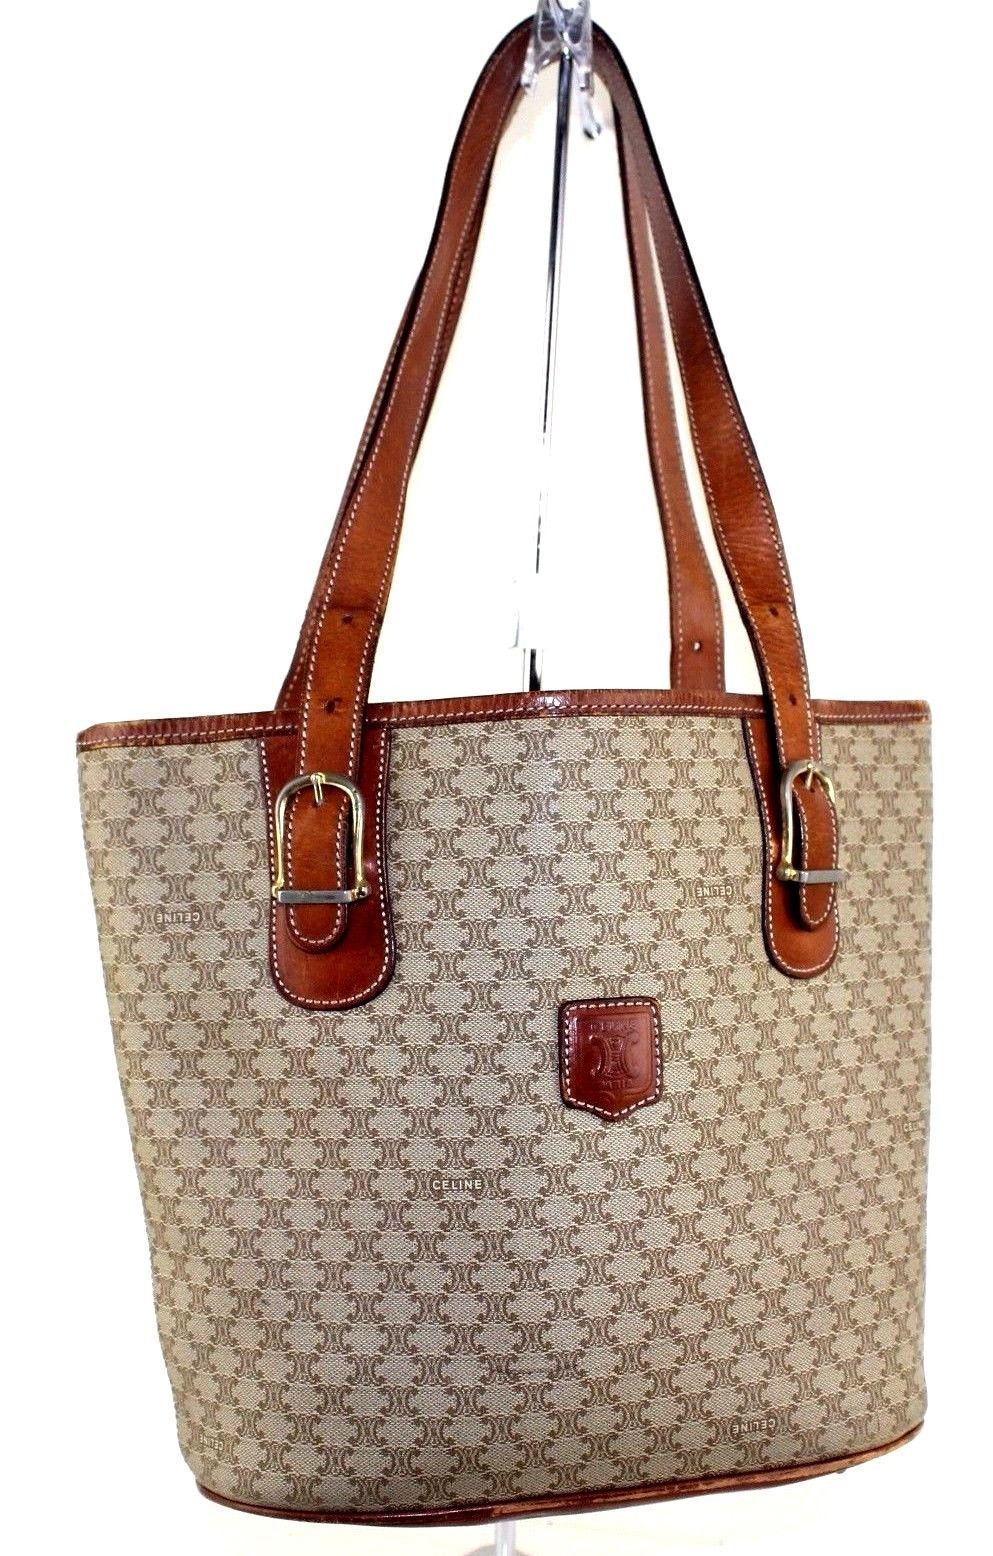 Auth CELINE Macadam Beige Coated Canvas Brown Leather Tote Shoulder Bag  Italy - £76.34 GBP 172a901f0230f